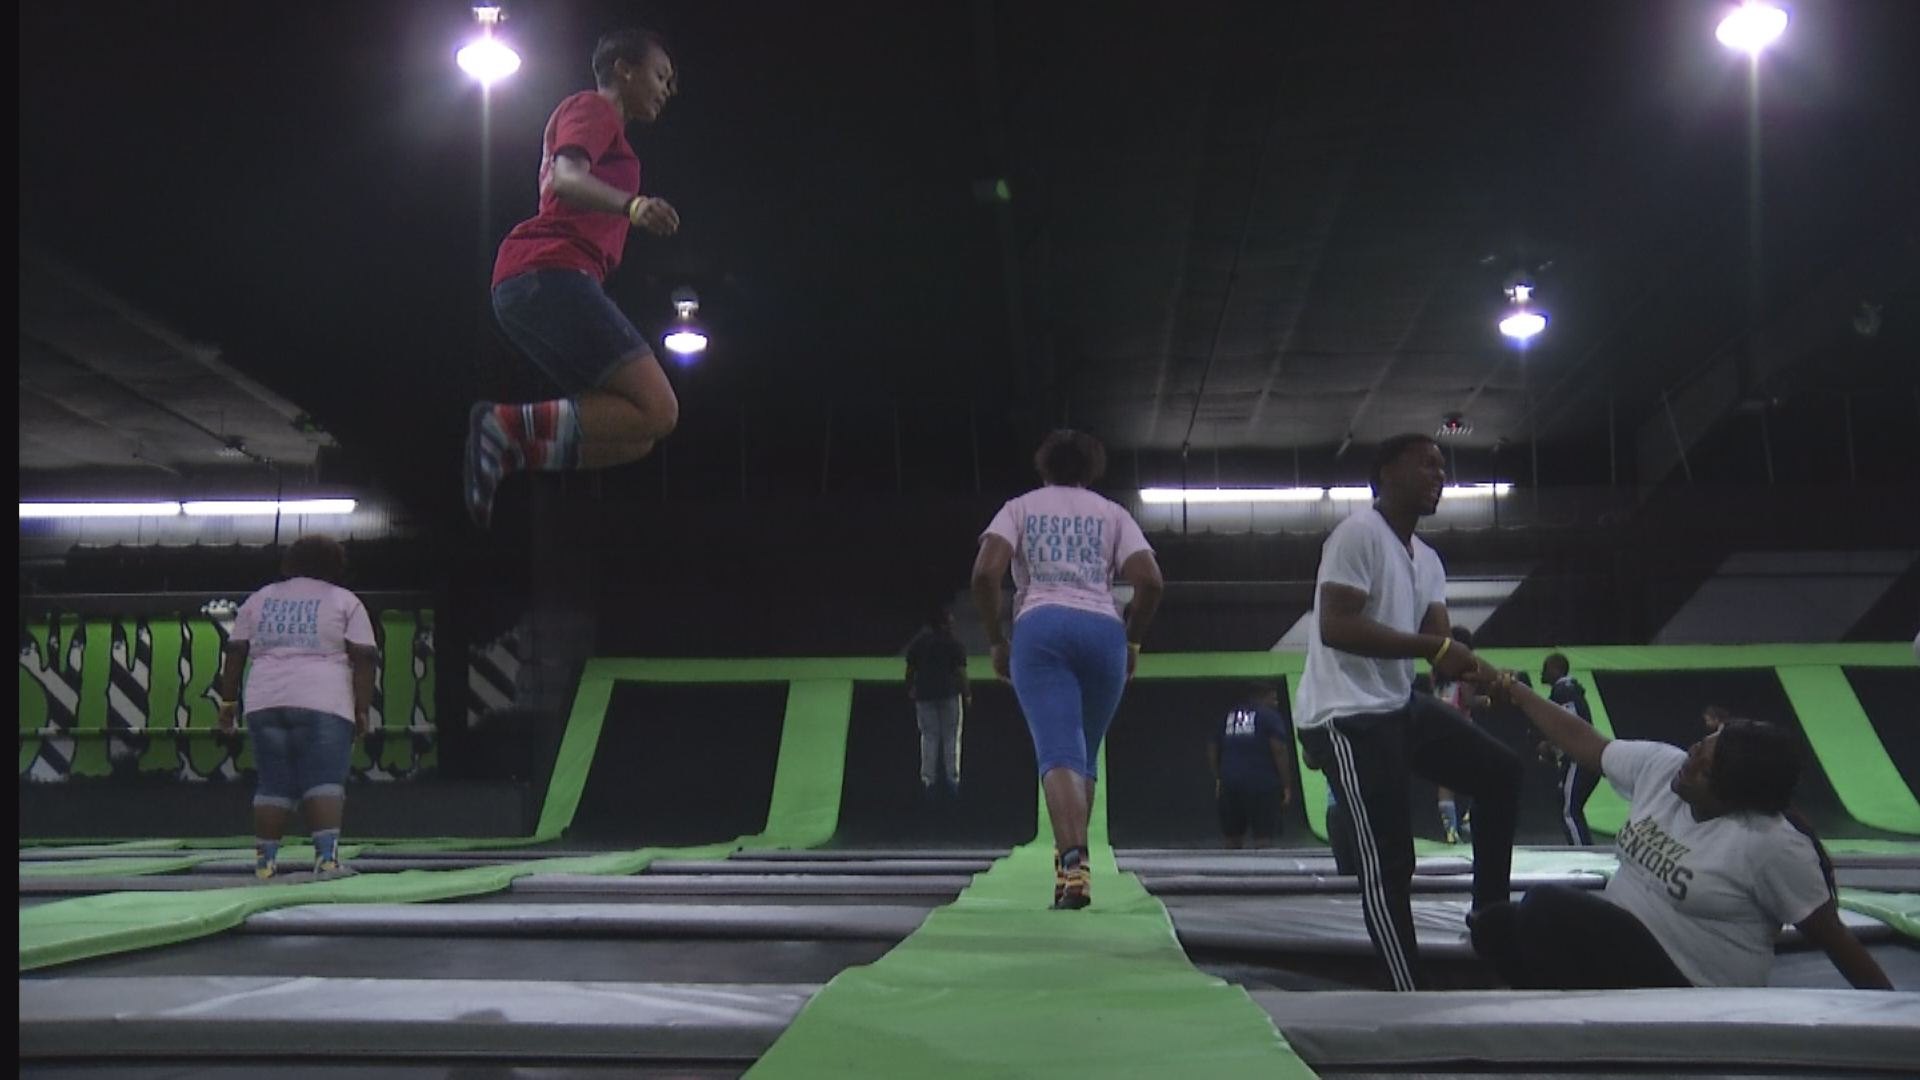 Students from Barnwell High School (S.C.) jump on trampolines at AirStrike in Augusta - May 31, 2016_151203